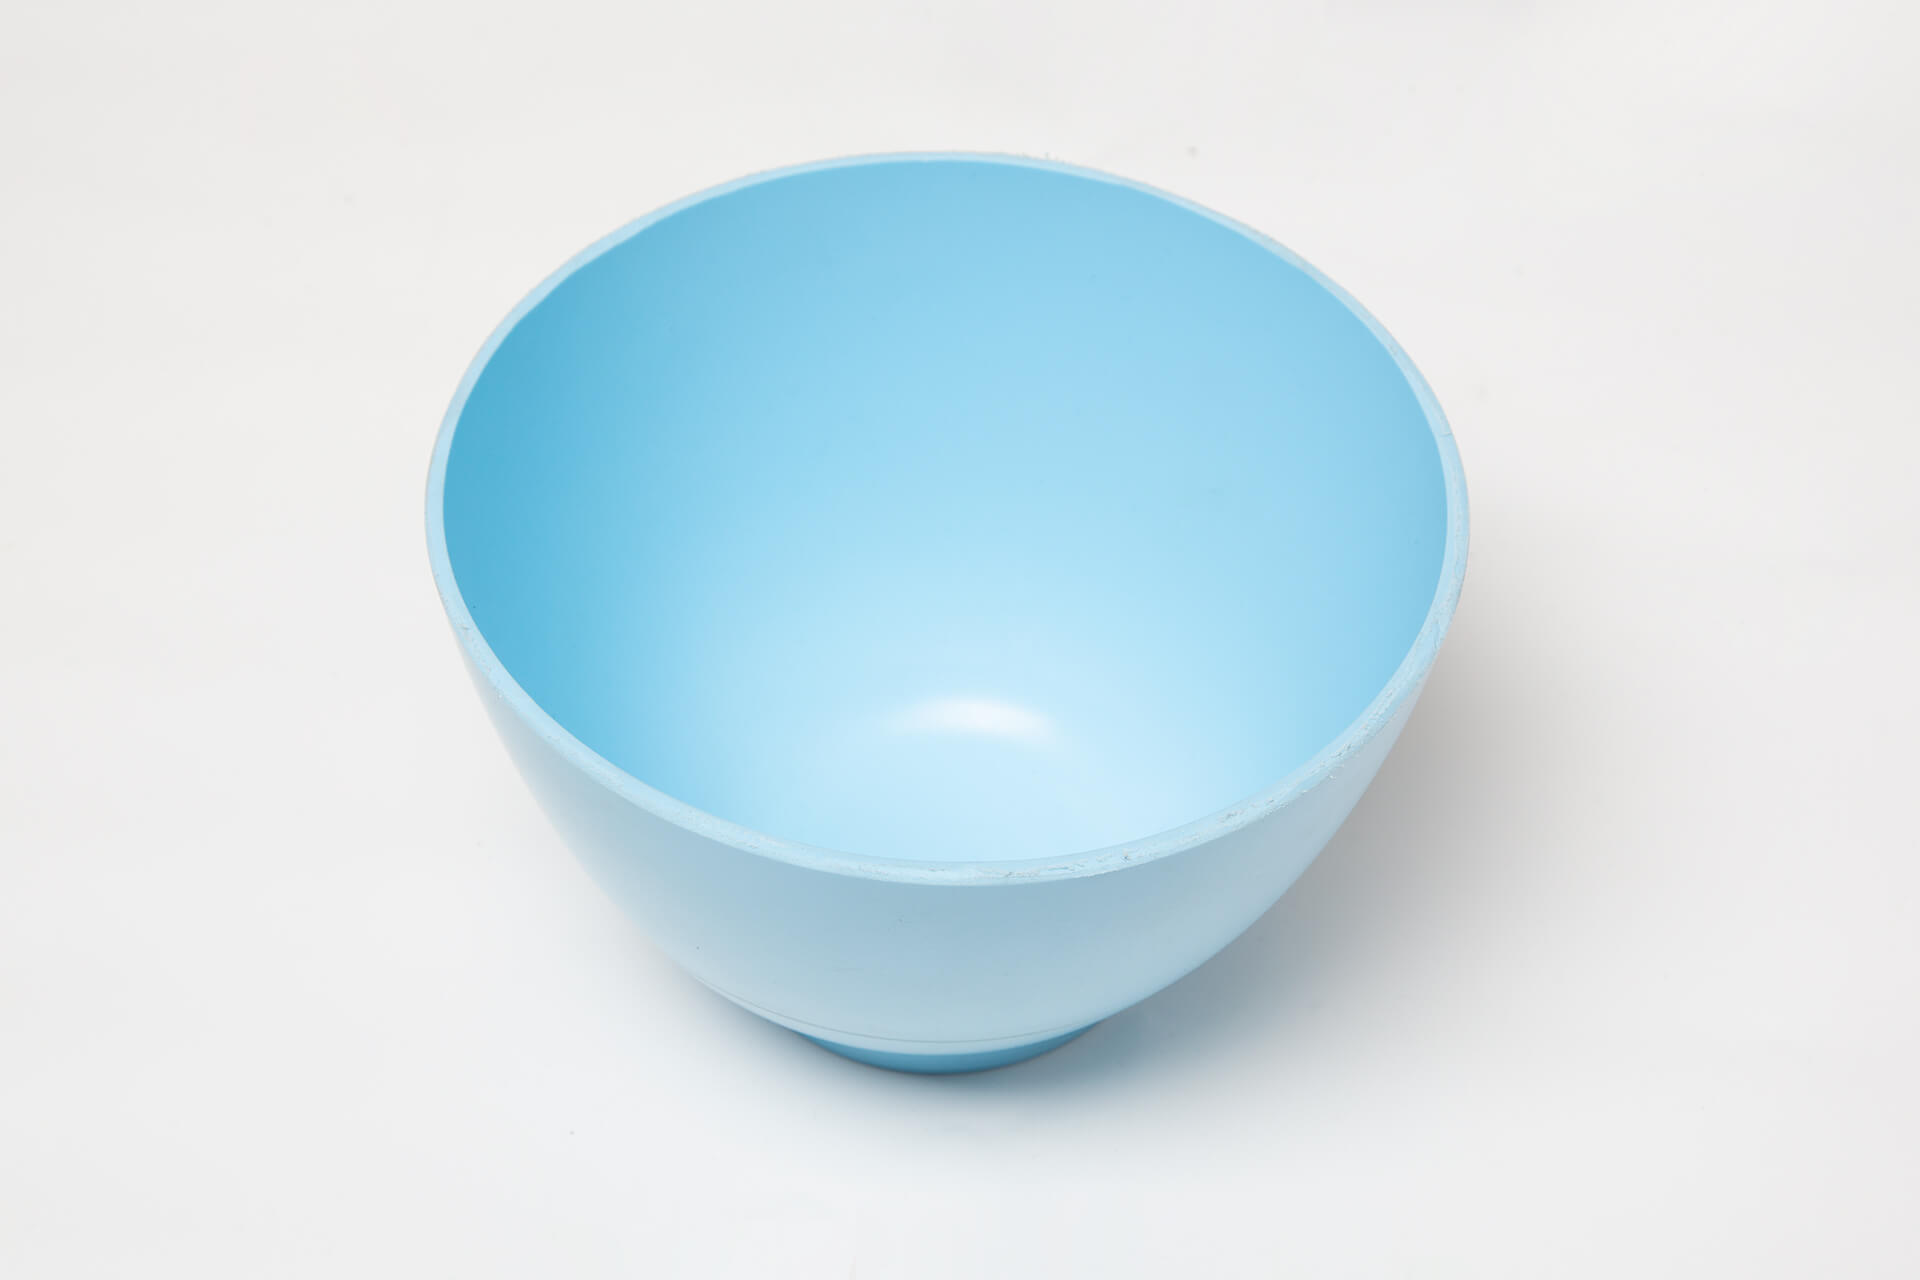 Kit WHEE - silicone bowl | www.wheetarget.com  Landing WHEE WPBakery – ENG kit whee ciotola di silicone